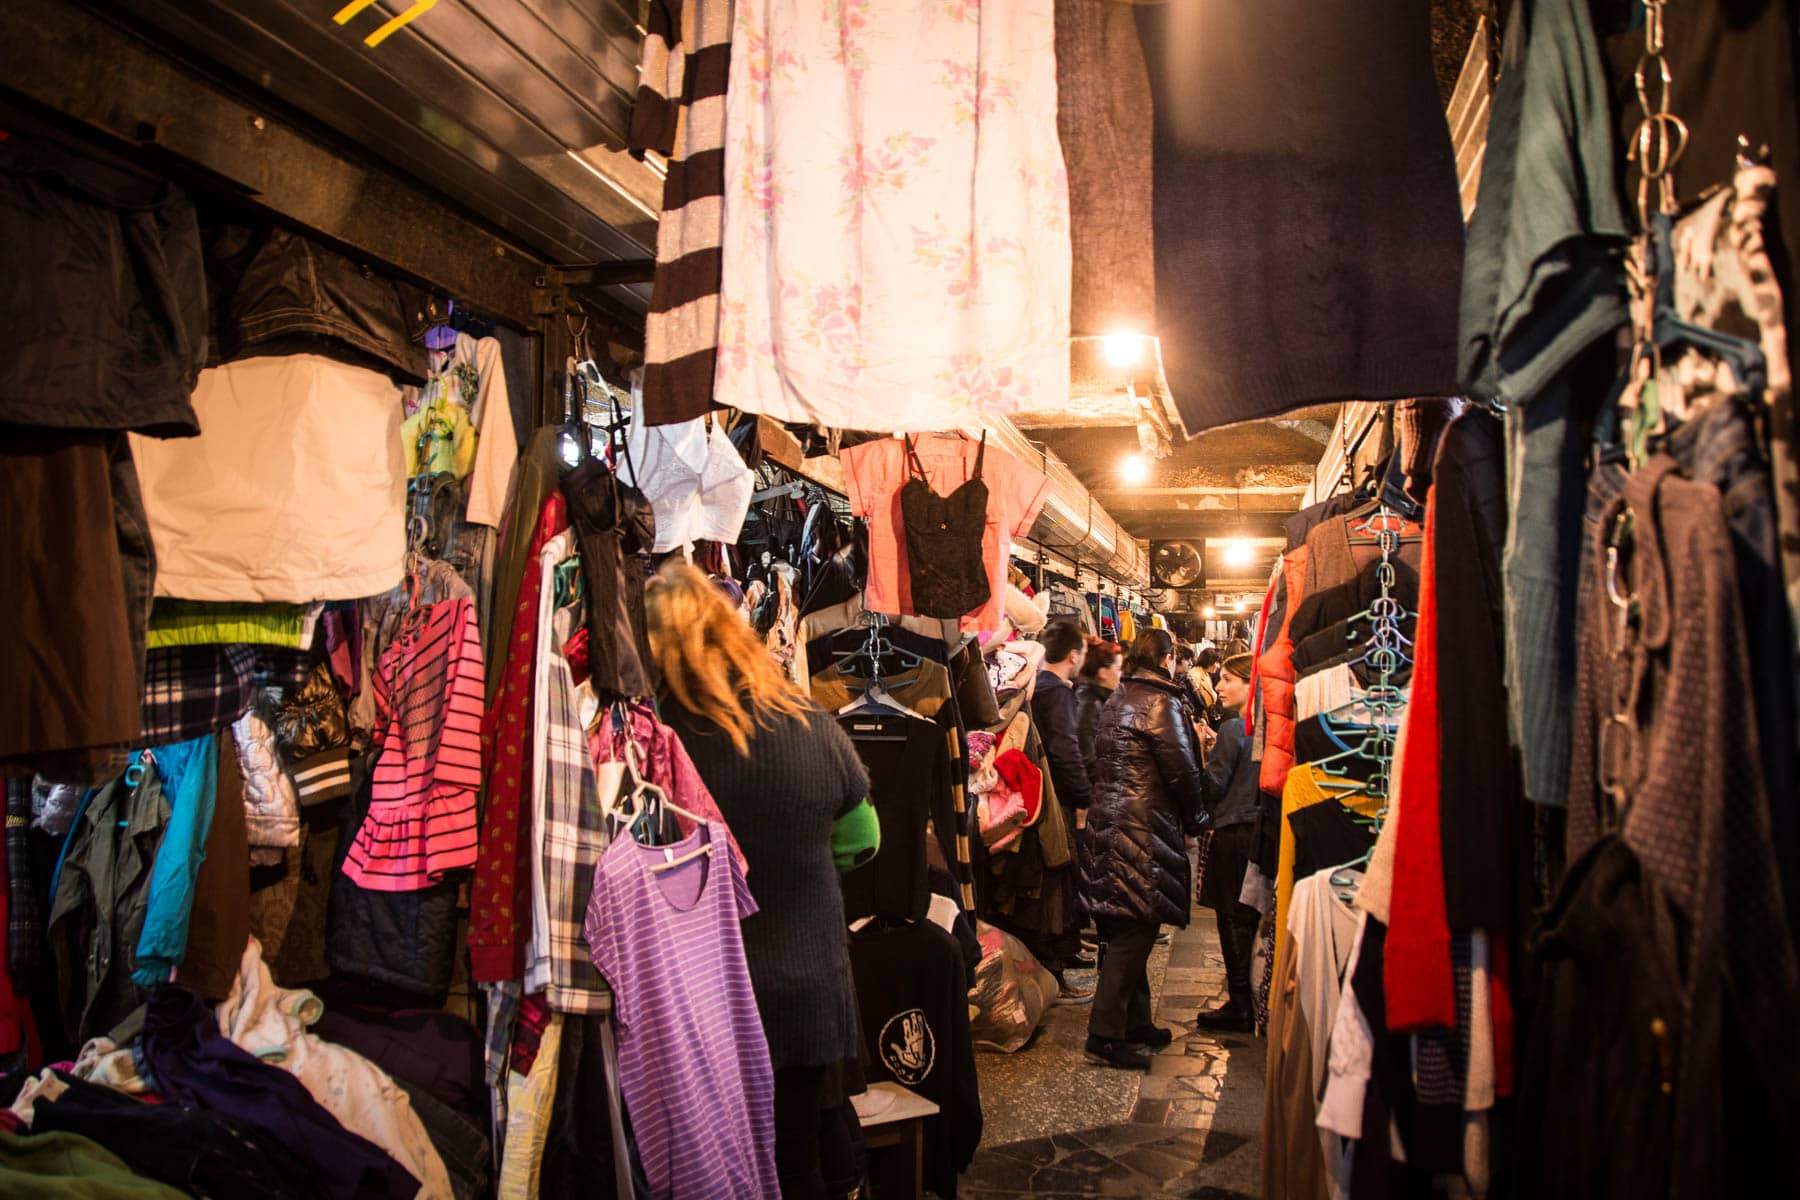 The underground clothing section at the Dezerter Bazaar in Tbilisi